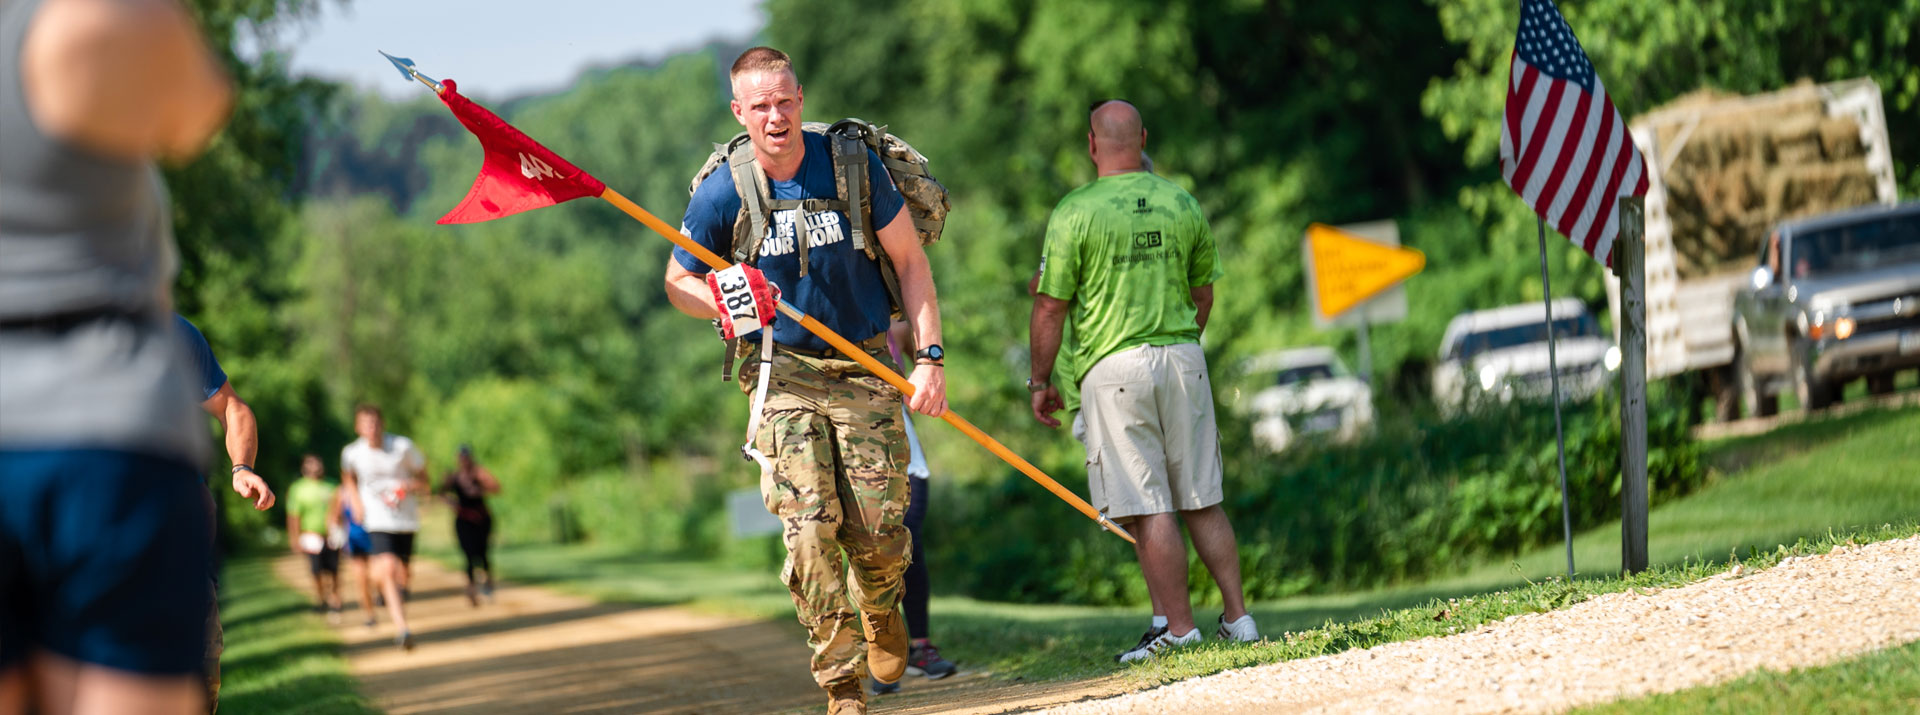 Runner wearing Military Fatigues at Run4Troops in Dubuque, Iowa